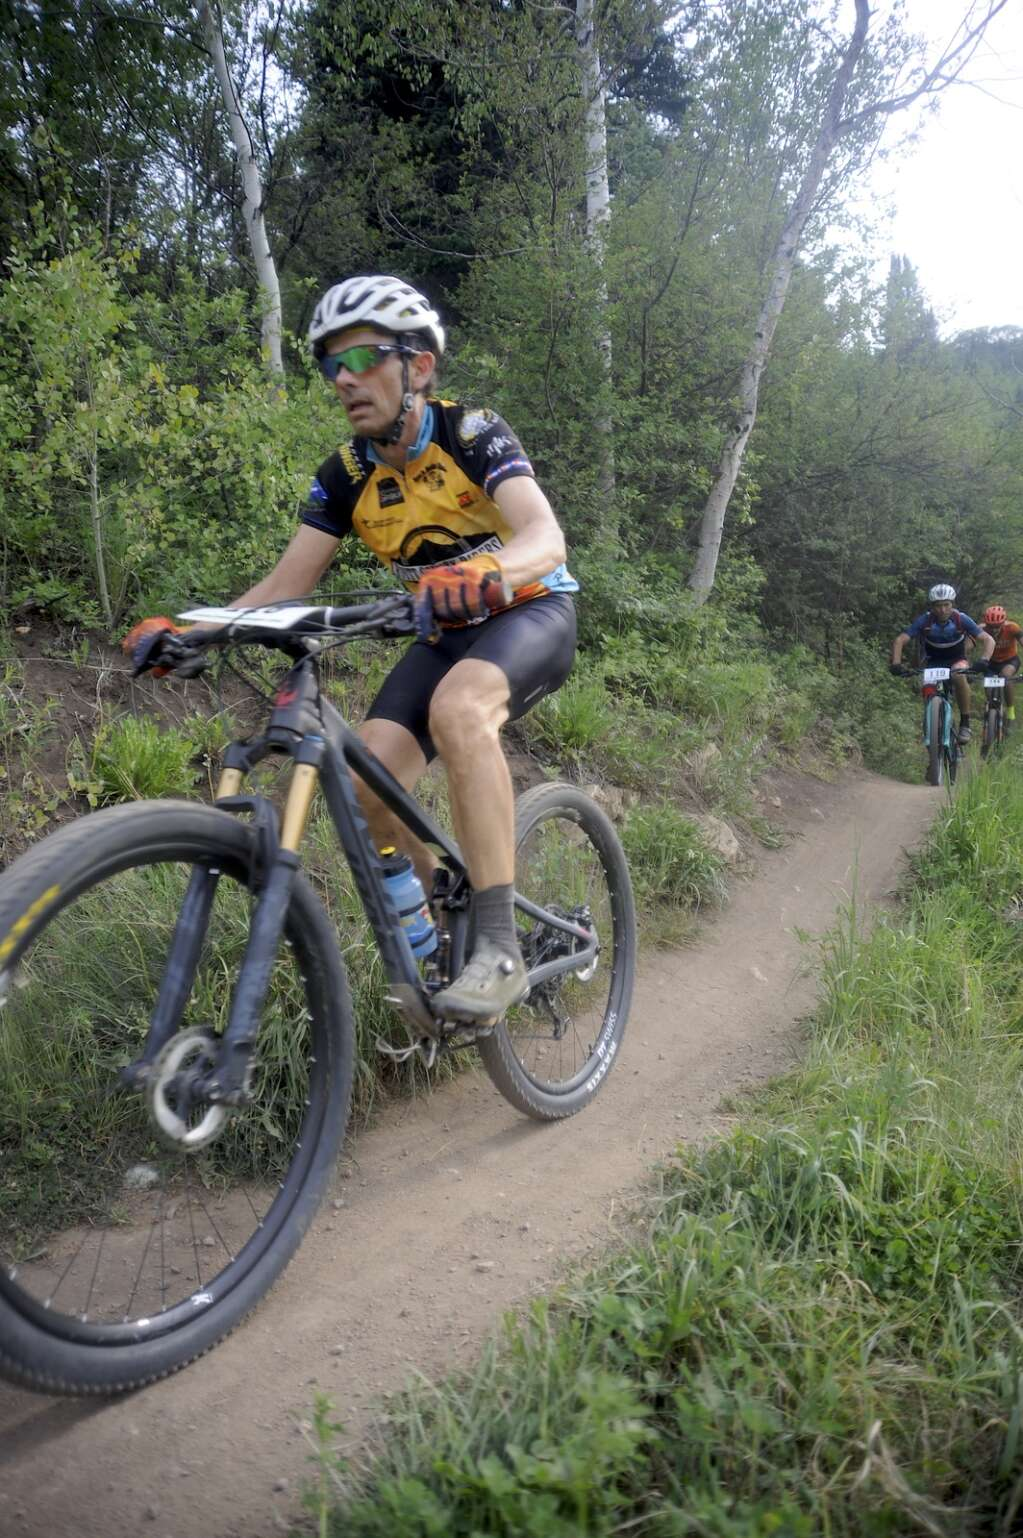 The men's 50+ expert division speeds along the singletrack at the Town Challenge Emerald Endurance race on Wednesday evening. (Photo by Shelby Reardon)